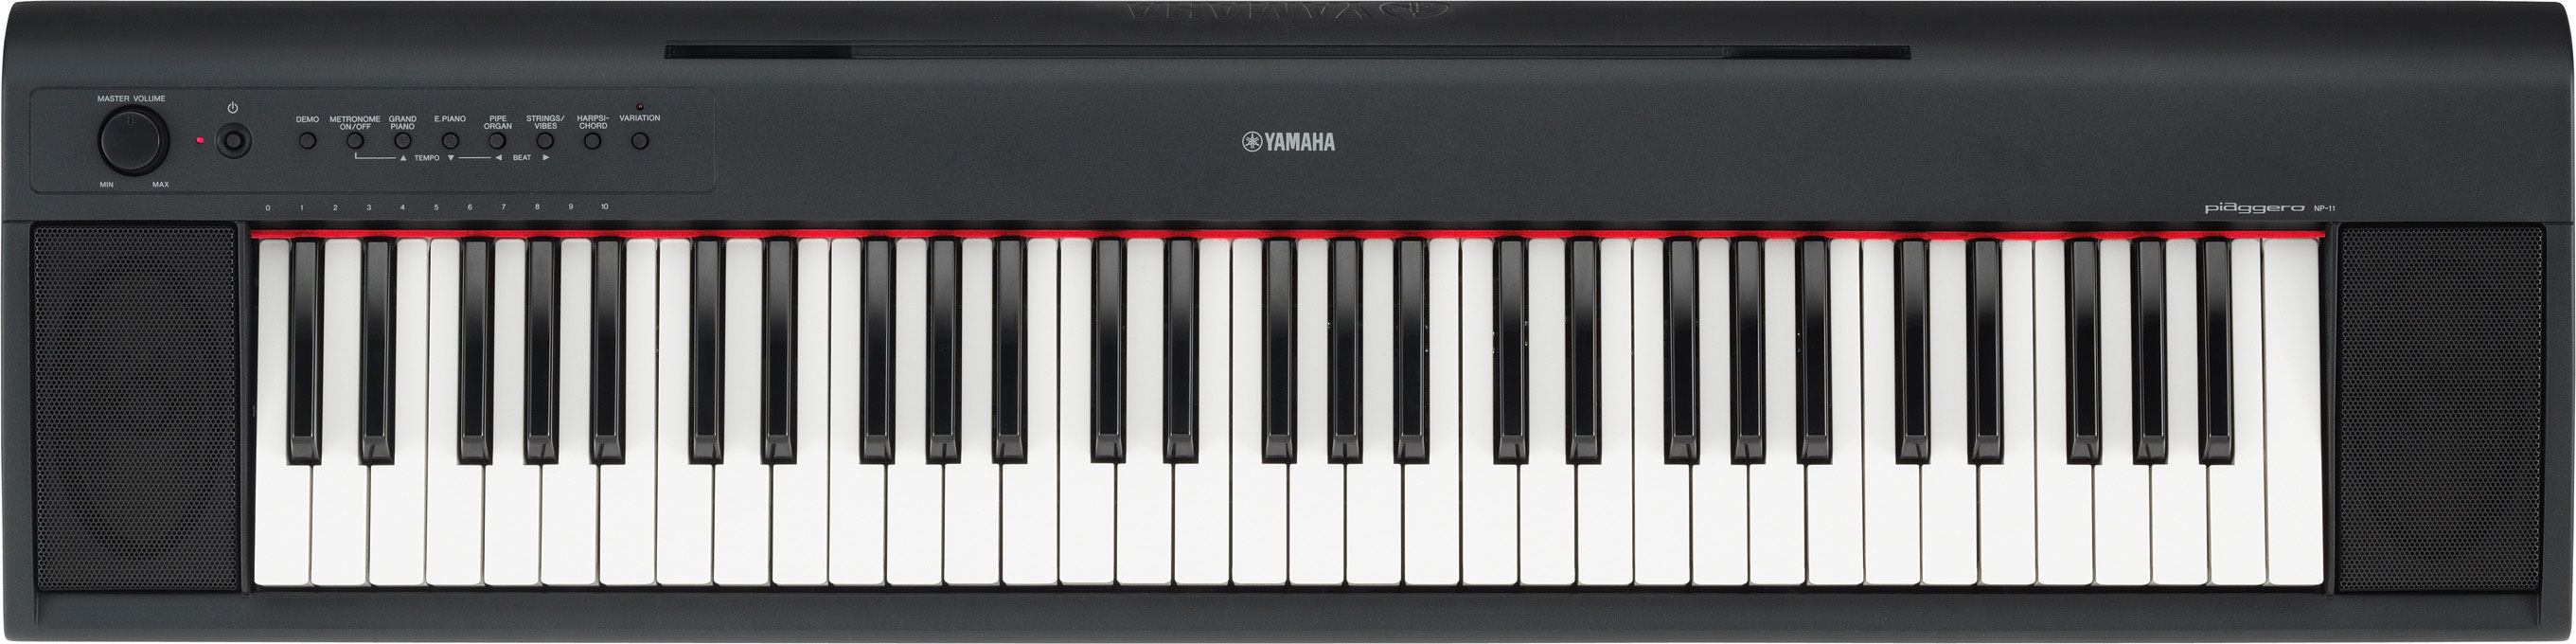 Yamaha NP11 Piaggero Series Keyboard for Piano Lessons